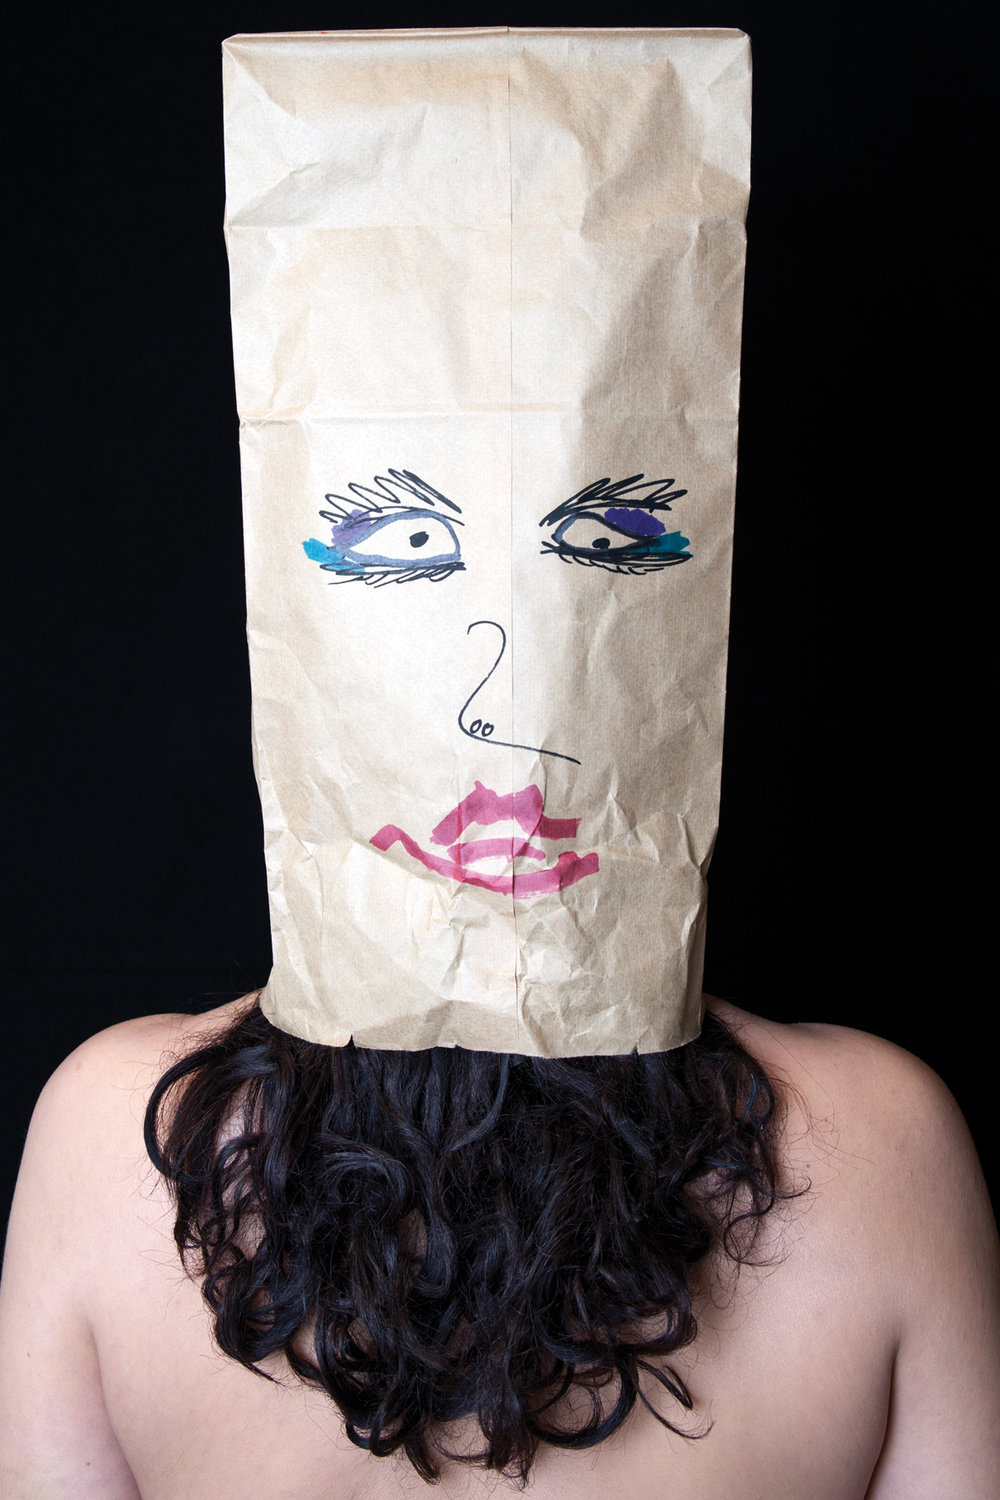 paper bag portrait  , 2016, from the series: 21st century woman, photograph, sizes vary.